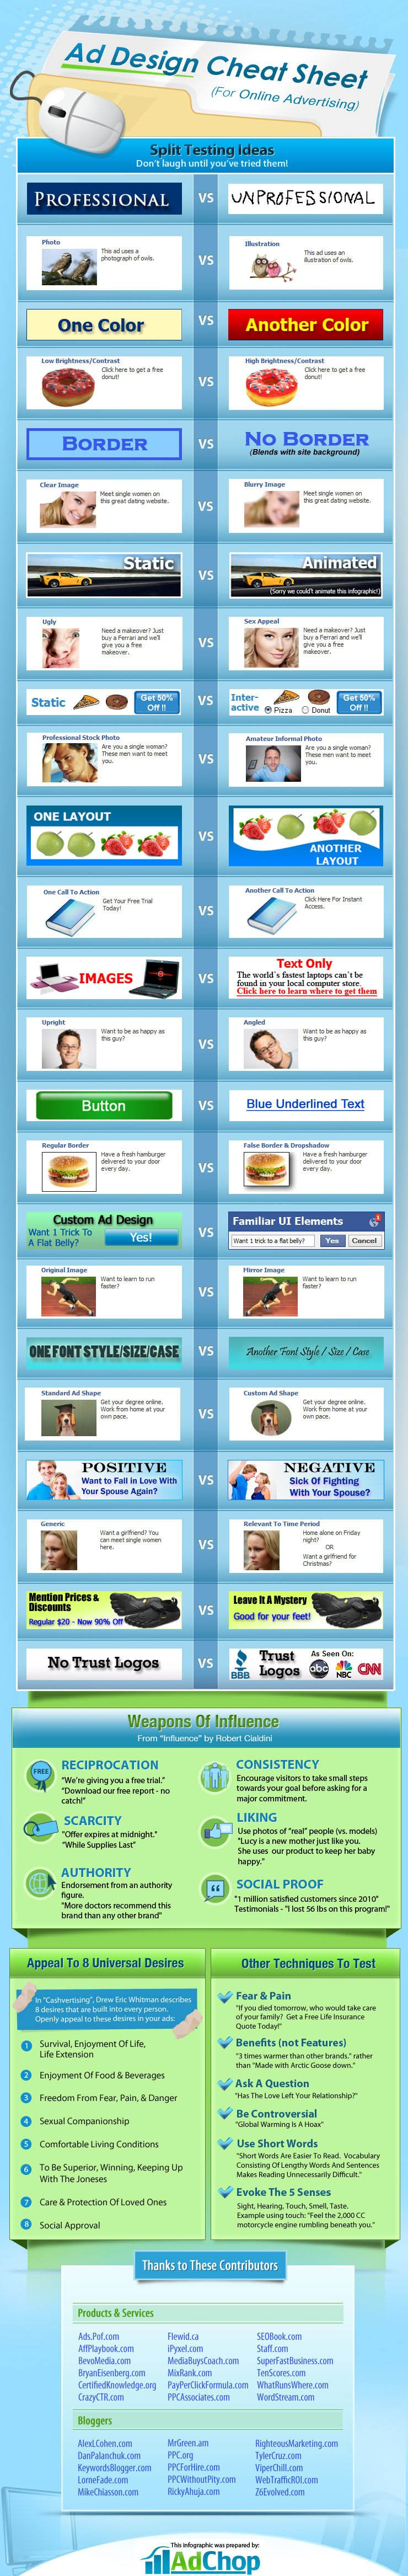 Guide to creating ads and split testing ad elements to find the best converting advertisement